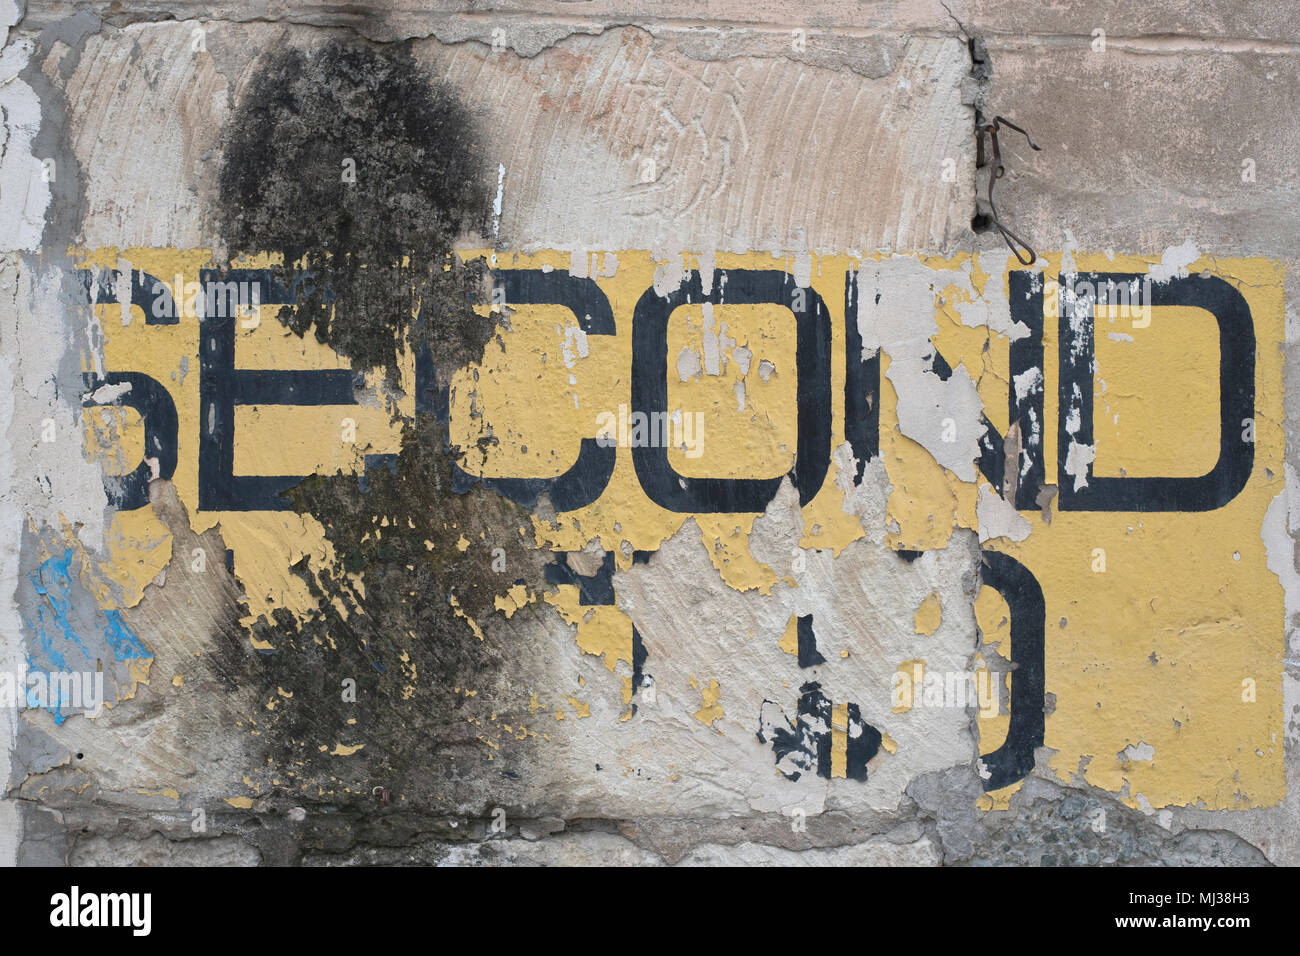 the old peeled inscription second hand on a brick wall - Stock Image